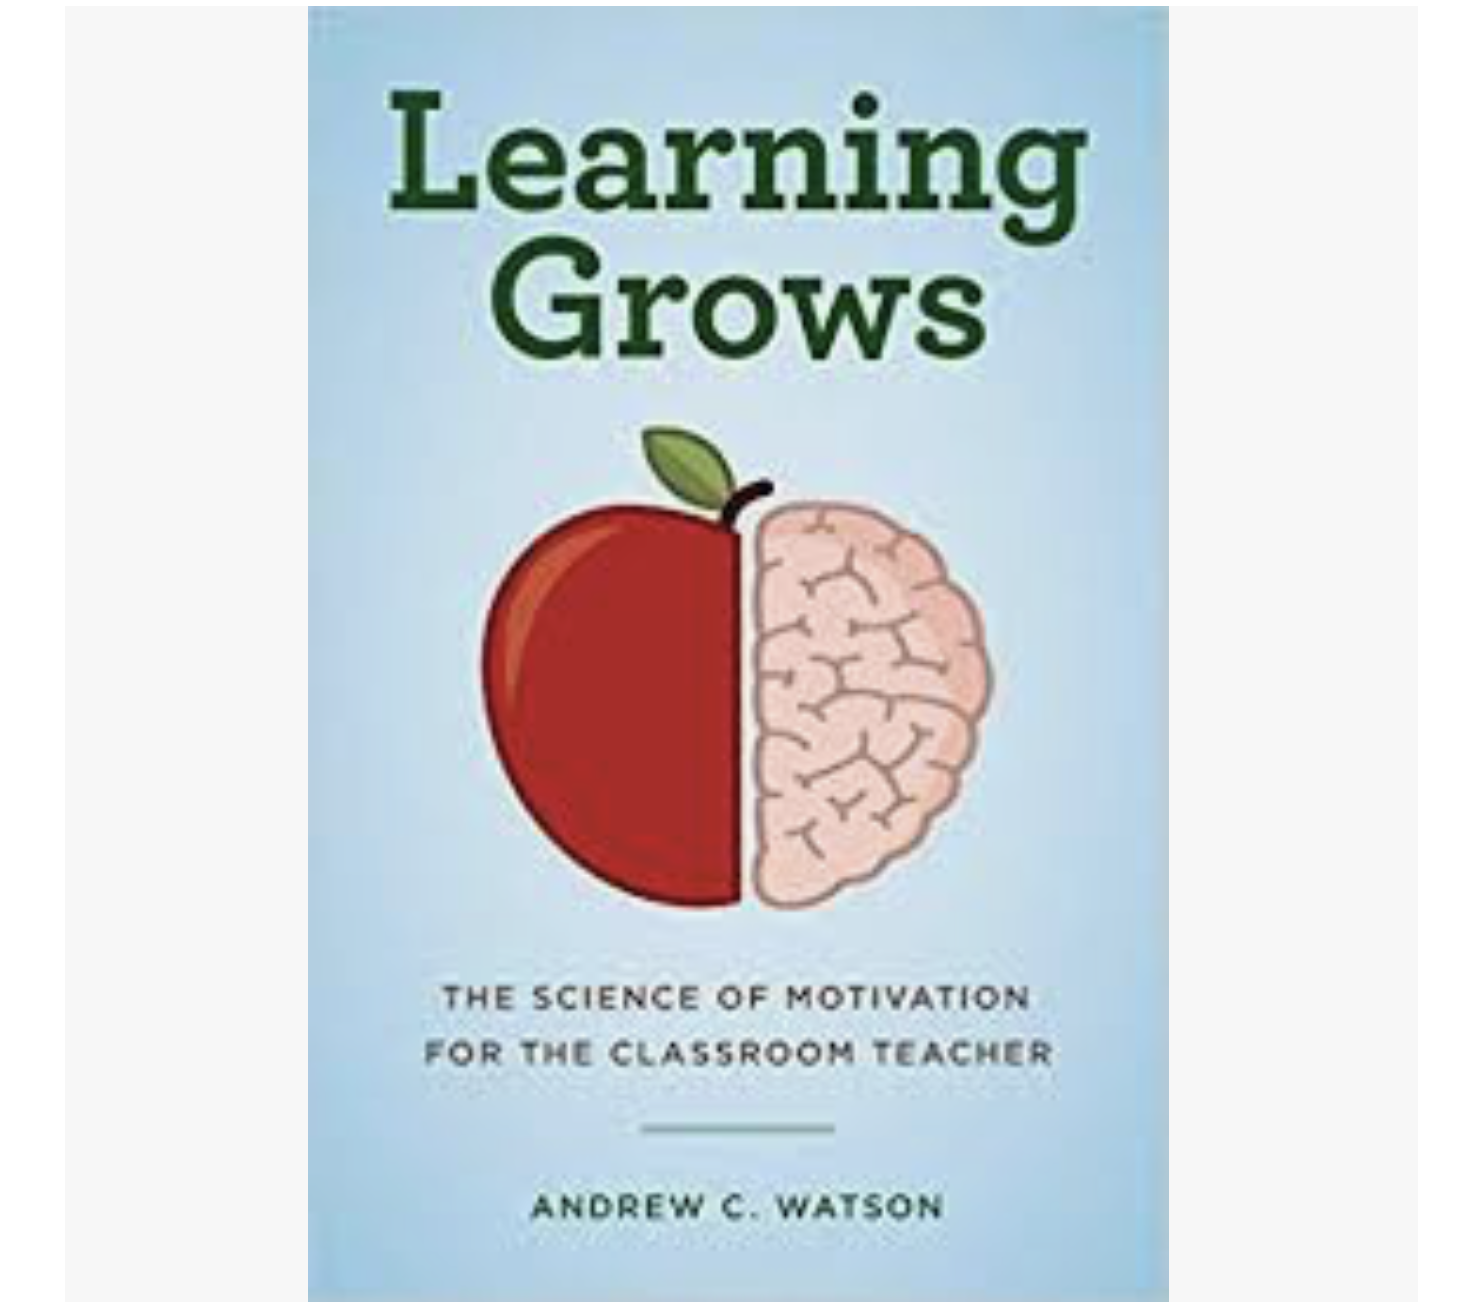 Learning Grows: The Science of Motivation for the Classroom